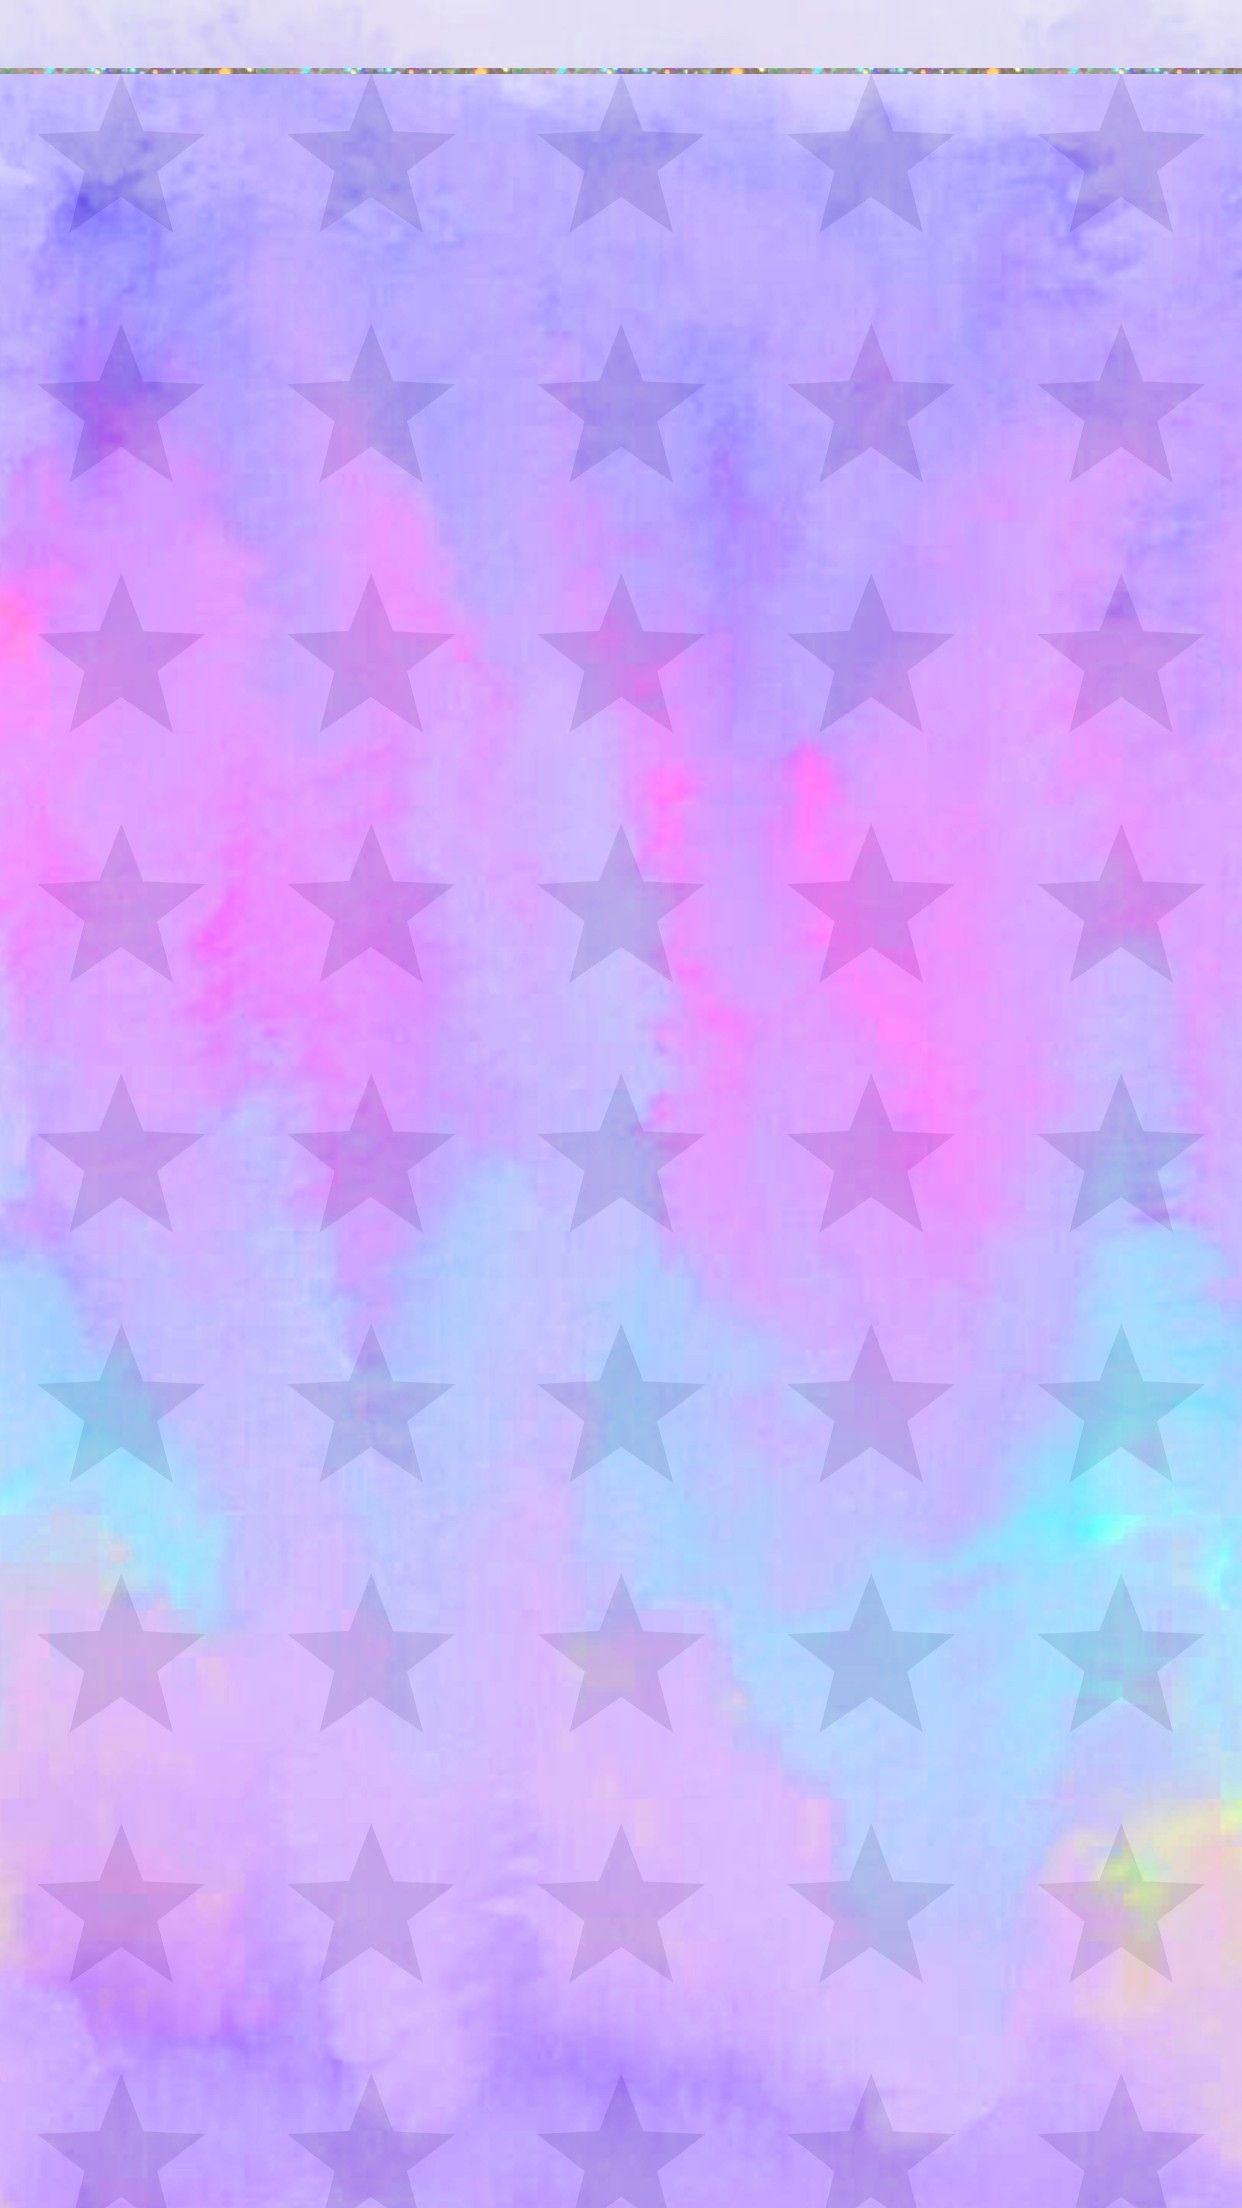 Wallpaper, Wallpapers, Iphone, Android, Iridescent, Purple, Pink, Pretty,